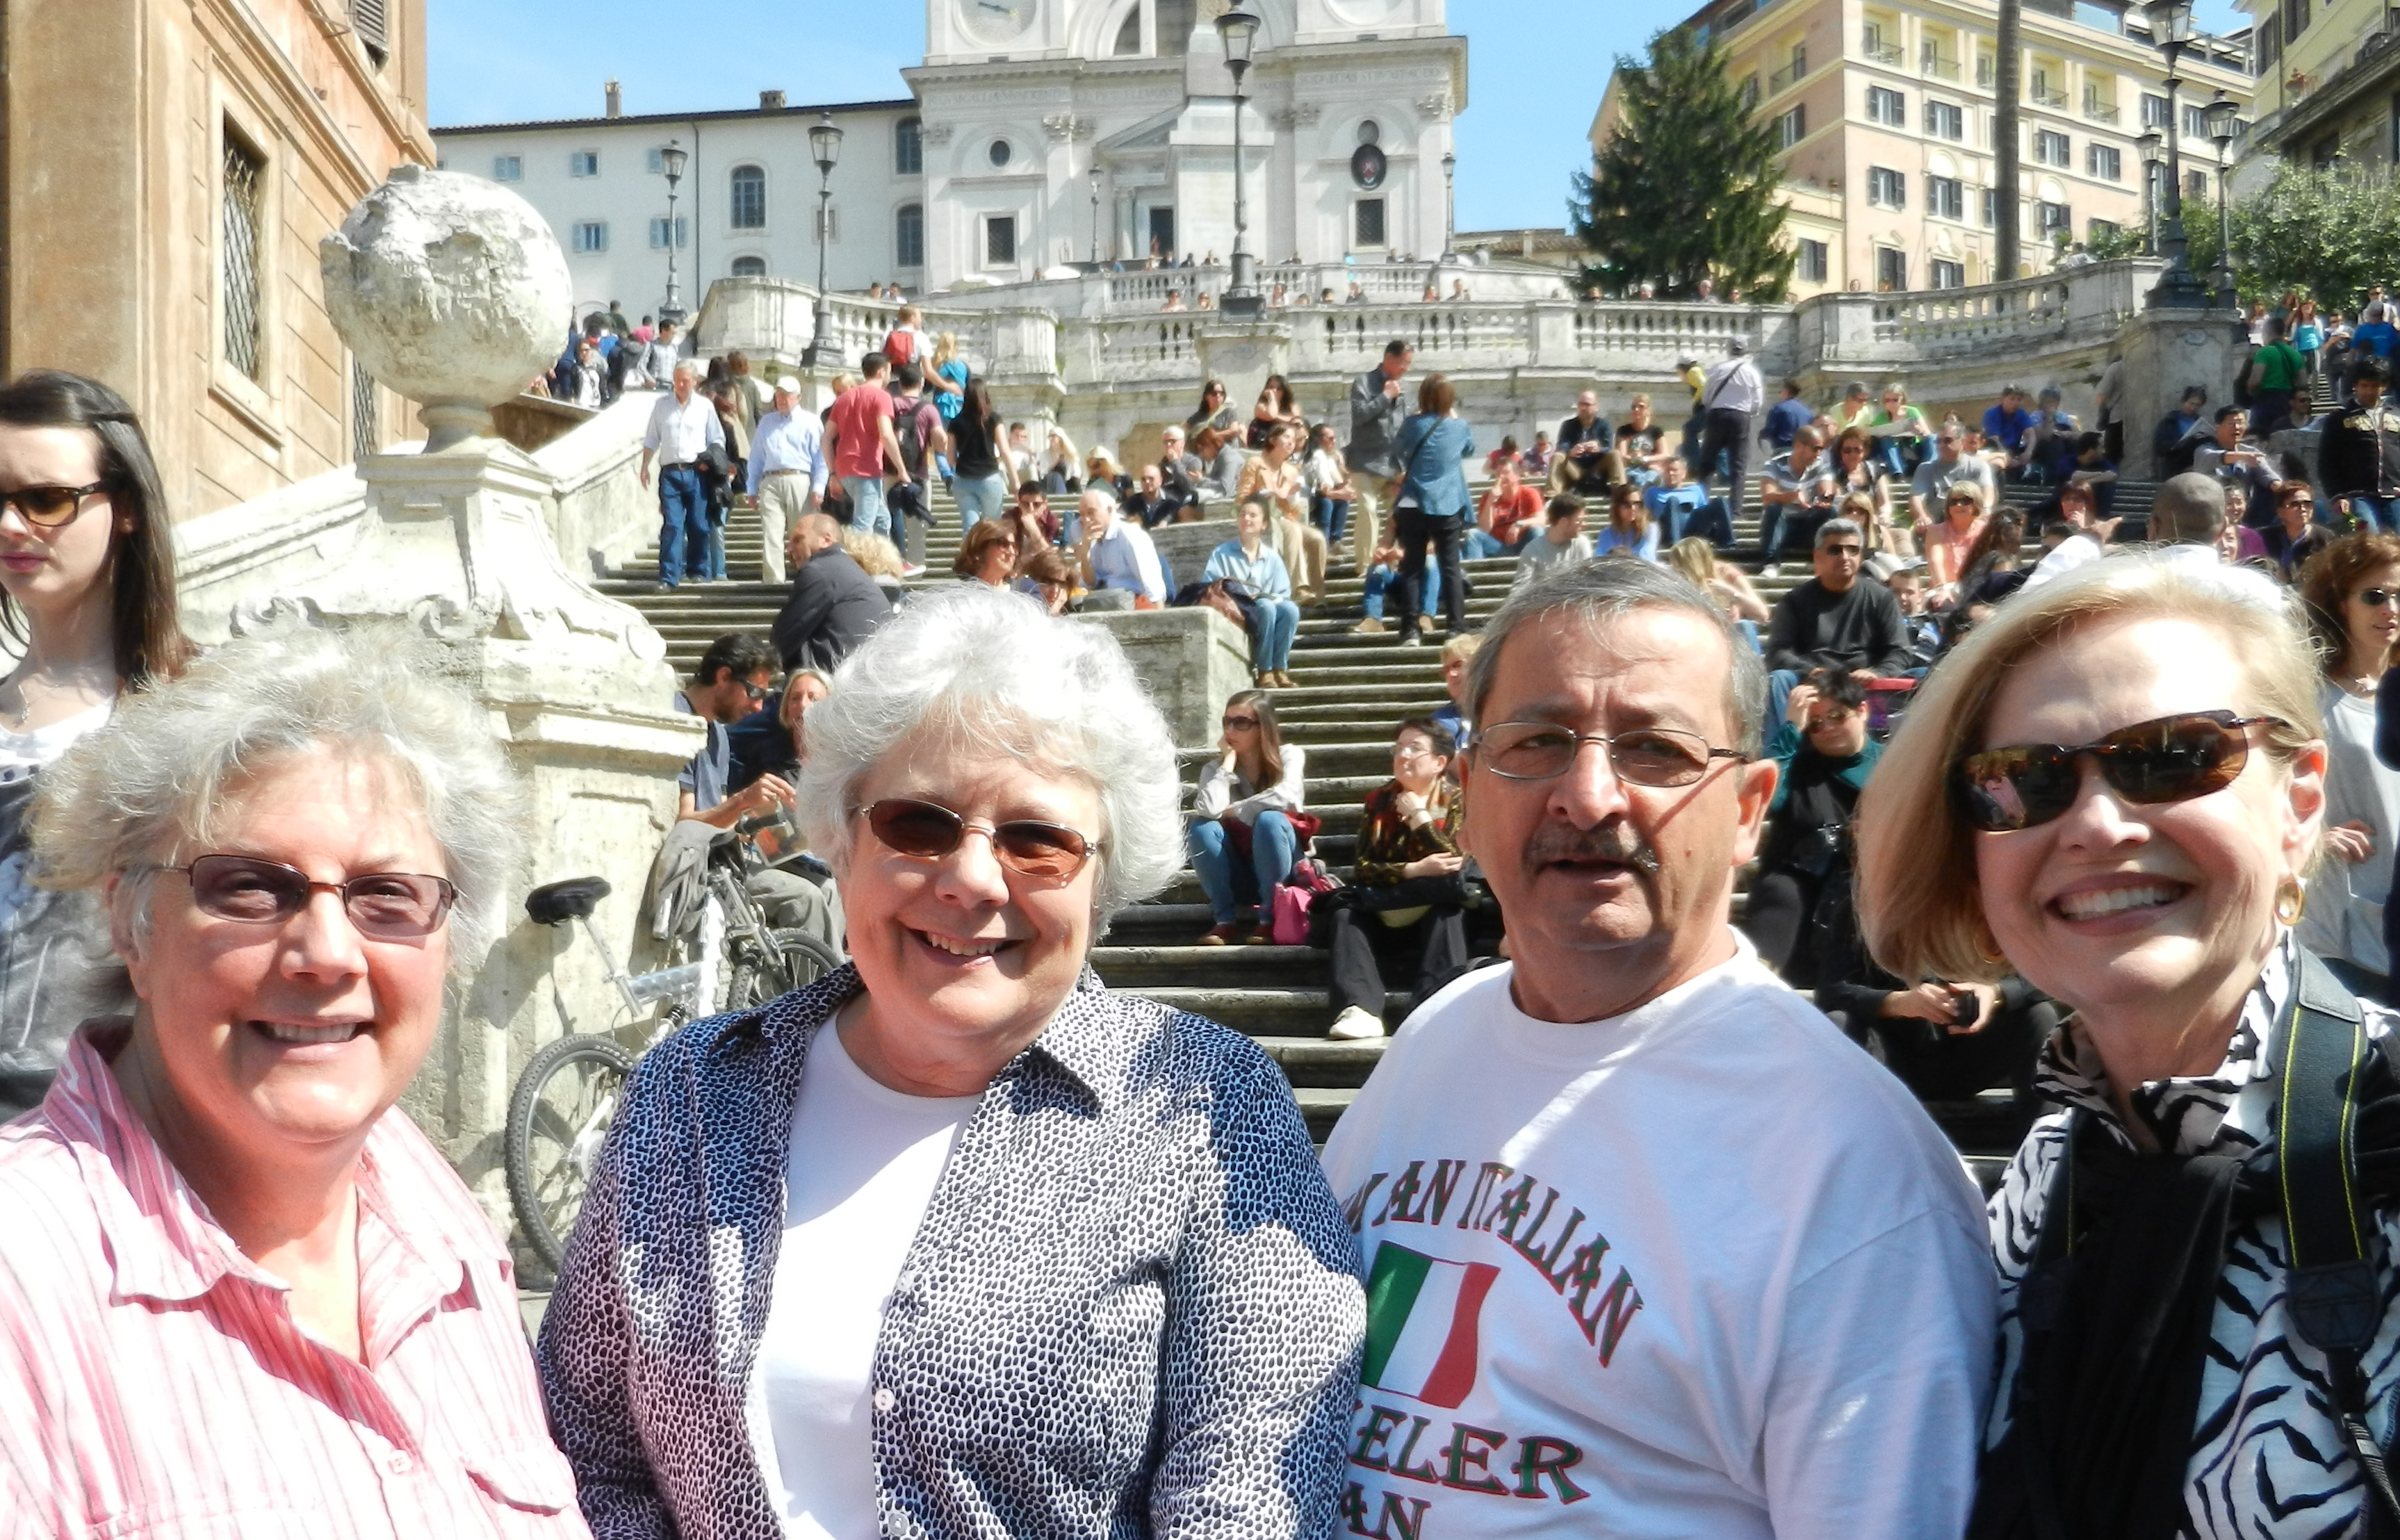 Friends at the Spanish Steps